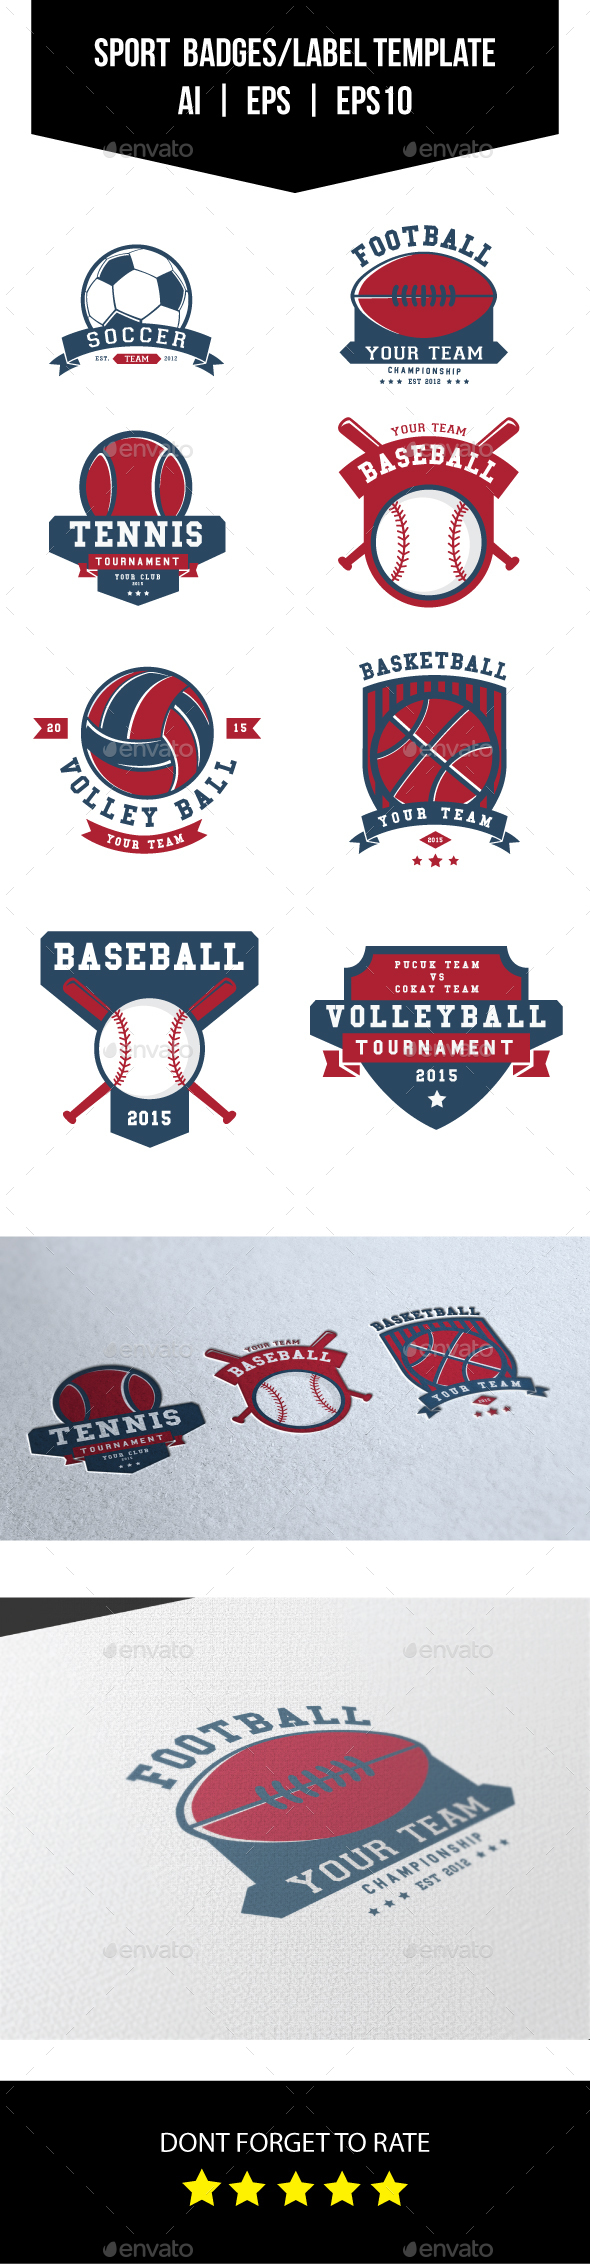 Sport Badges and Label/Logo Template - Badges & Stickers Web Elements